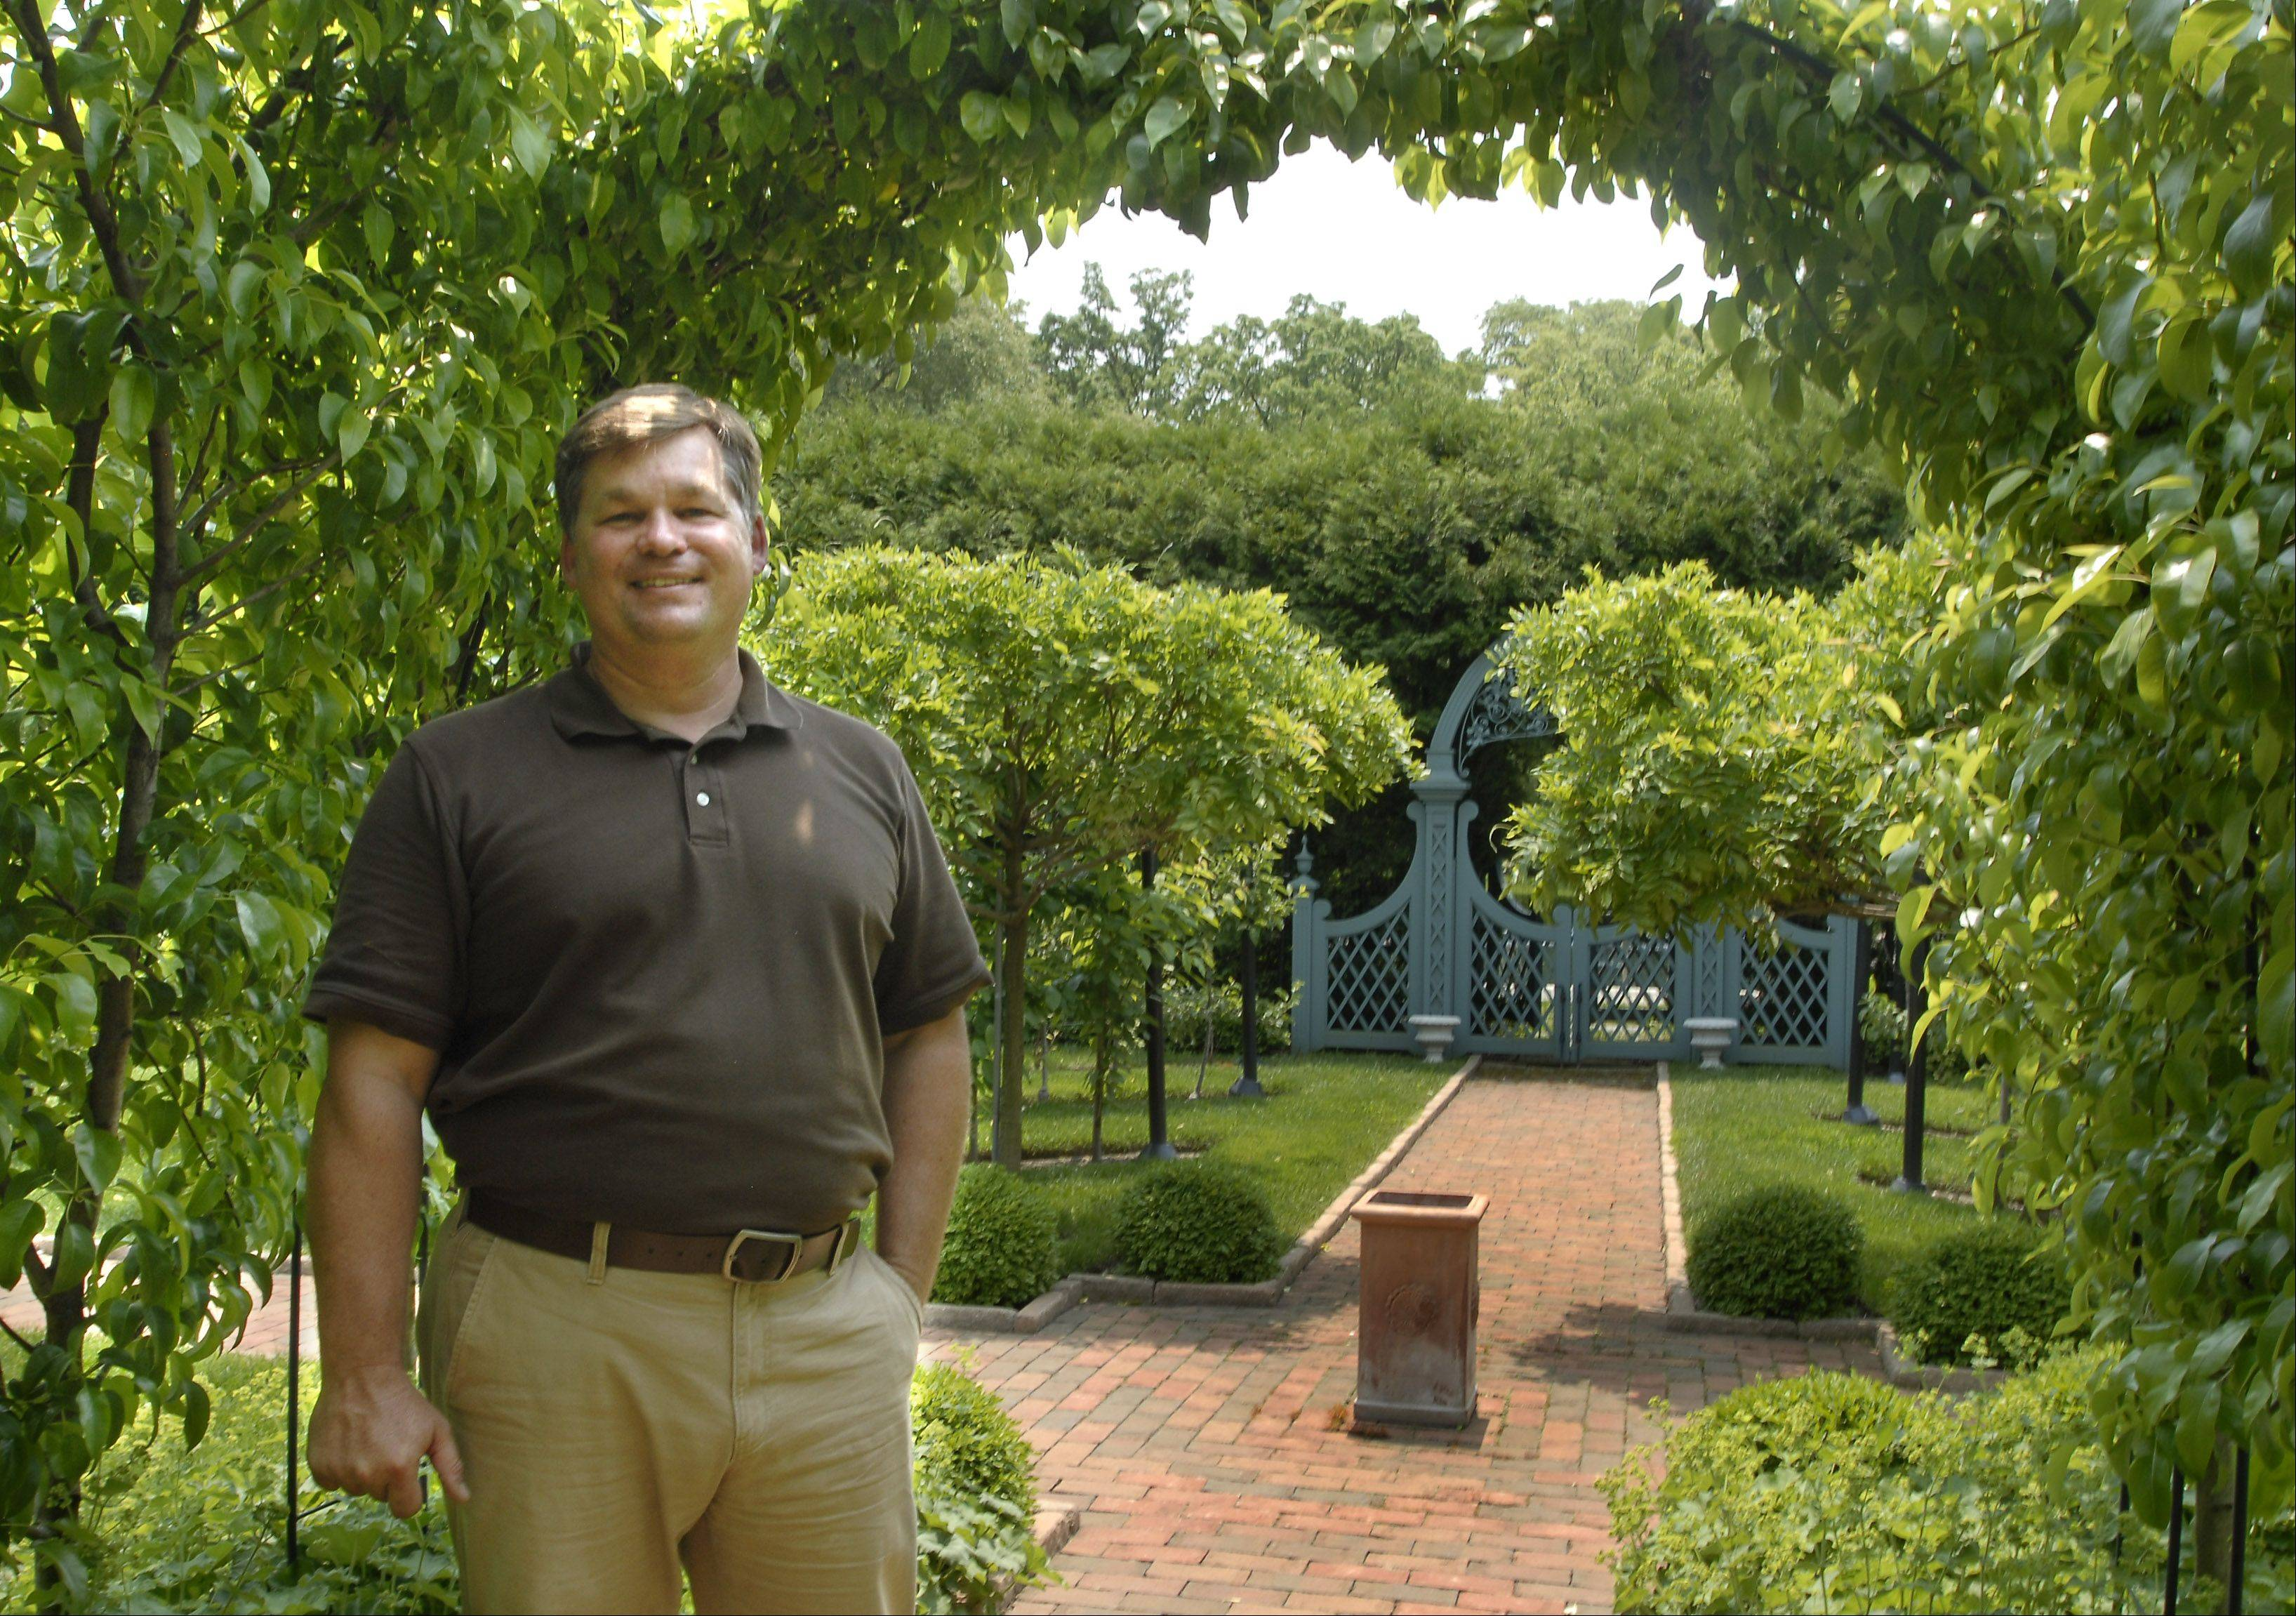 Landscape designer John Staab stands under an arch of pear trees in the Barrington Hills potager. The first work he did for Vicky and John Wauterlek on their 10 acres was in 1985 when he was an intern.